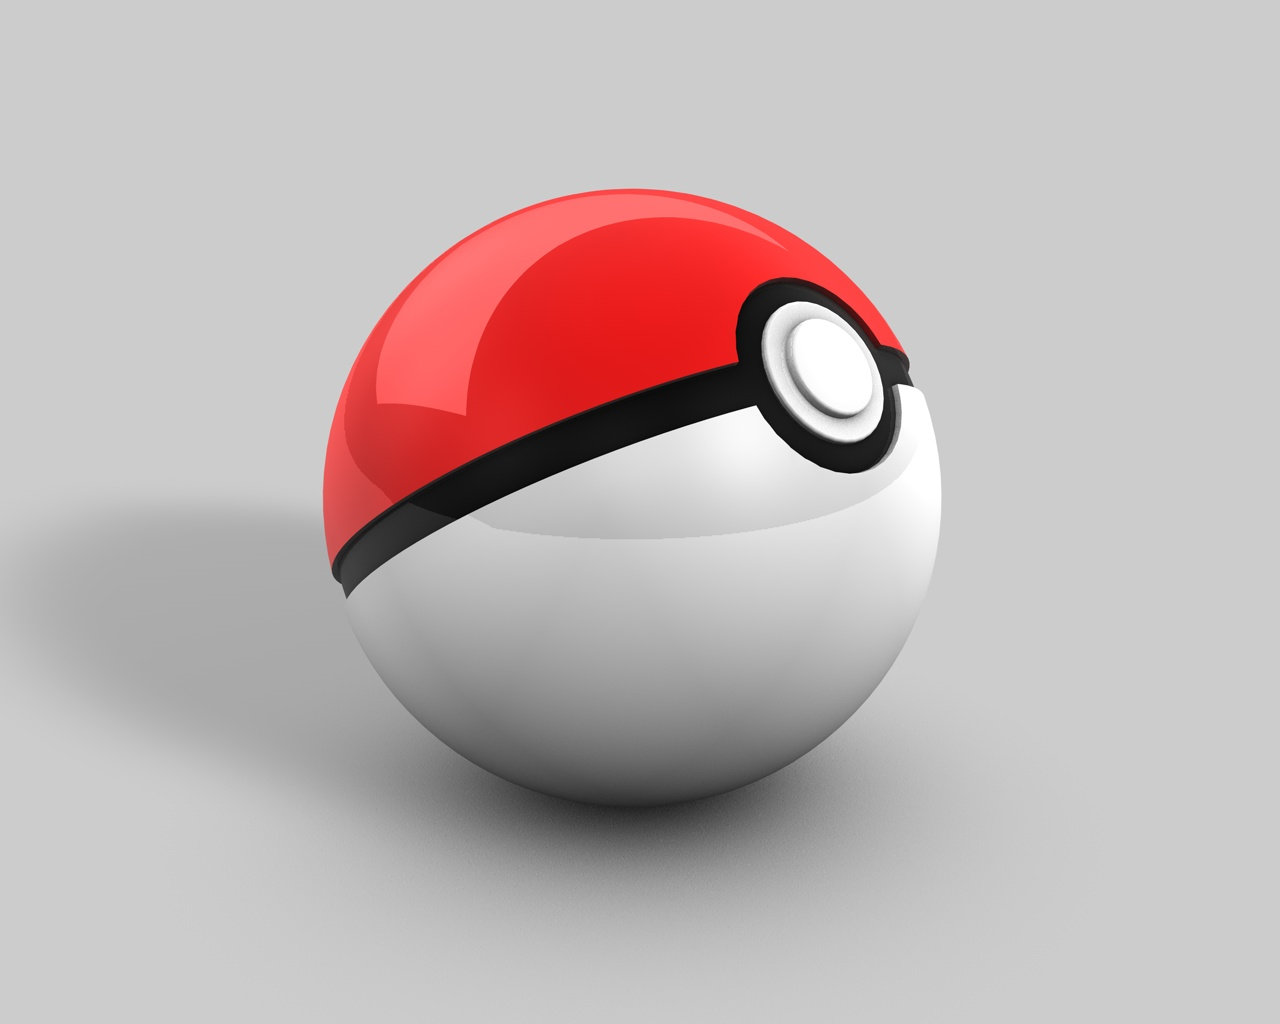 Pokemon Ball Pictures